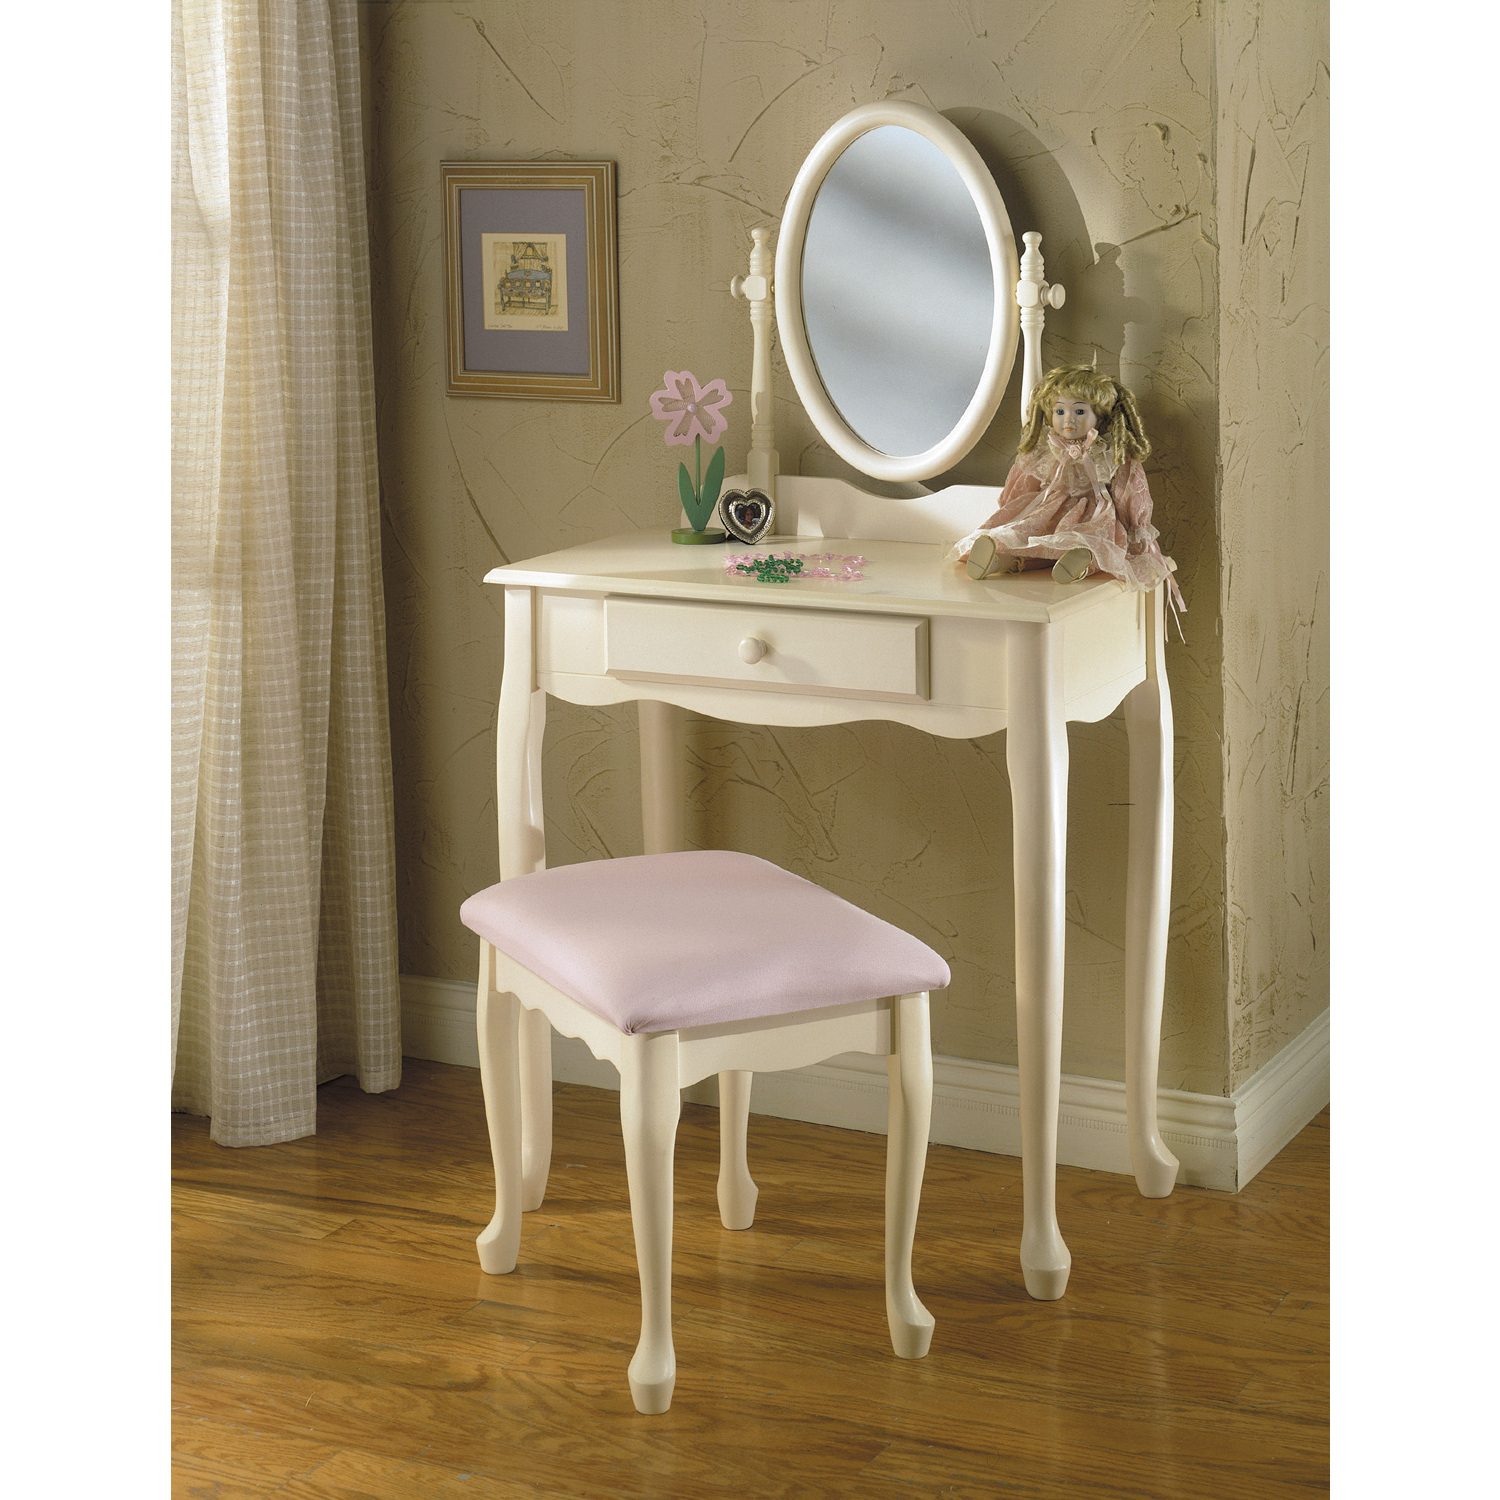 Off White Vanity Mirror And Bench Ojcommerce